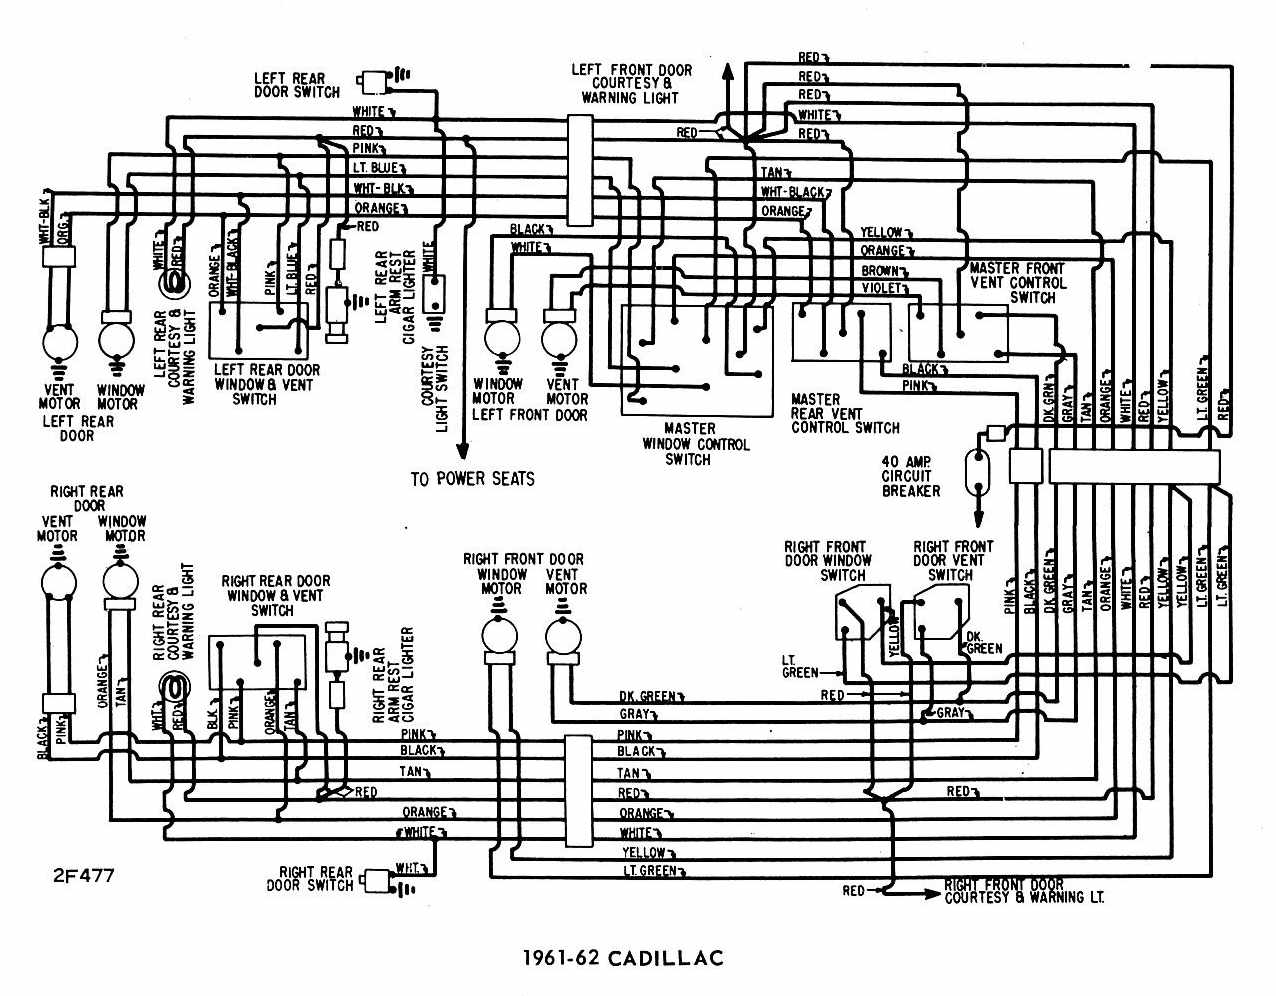 Cadillac Car Manuals Wiring Diagrams Pdf Fault Codes 67 Vw Harness Free Download Diagram Schematic